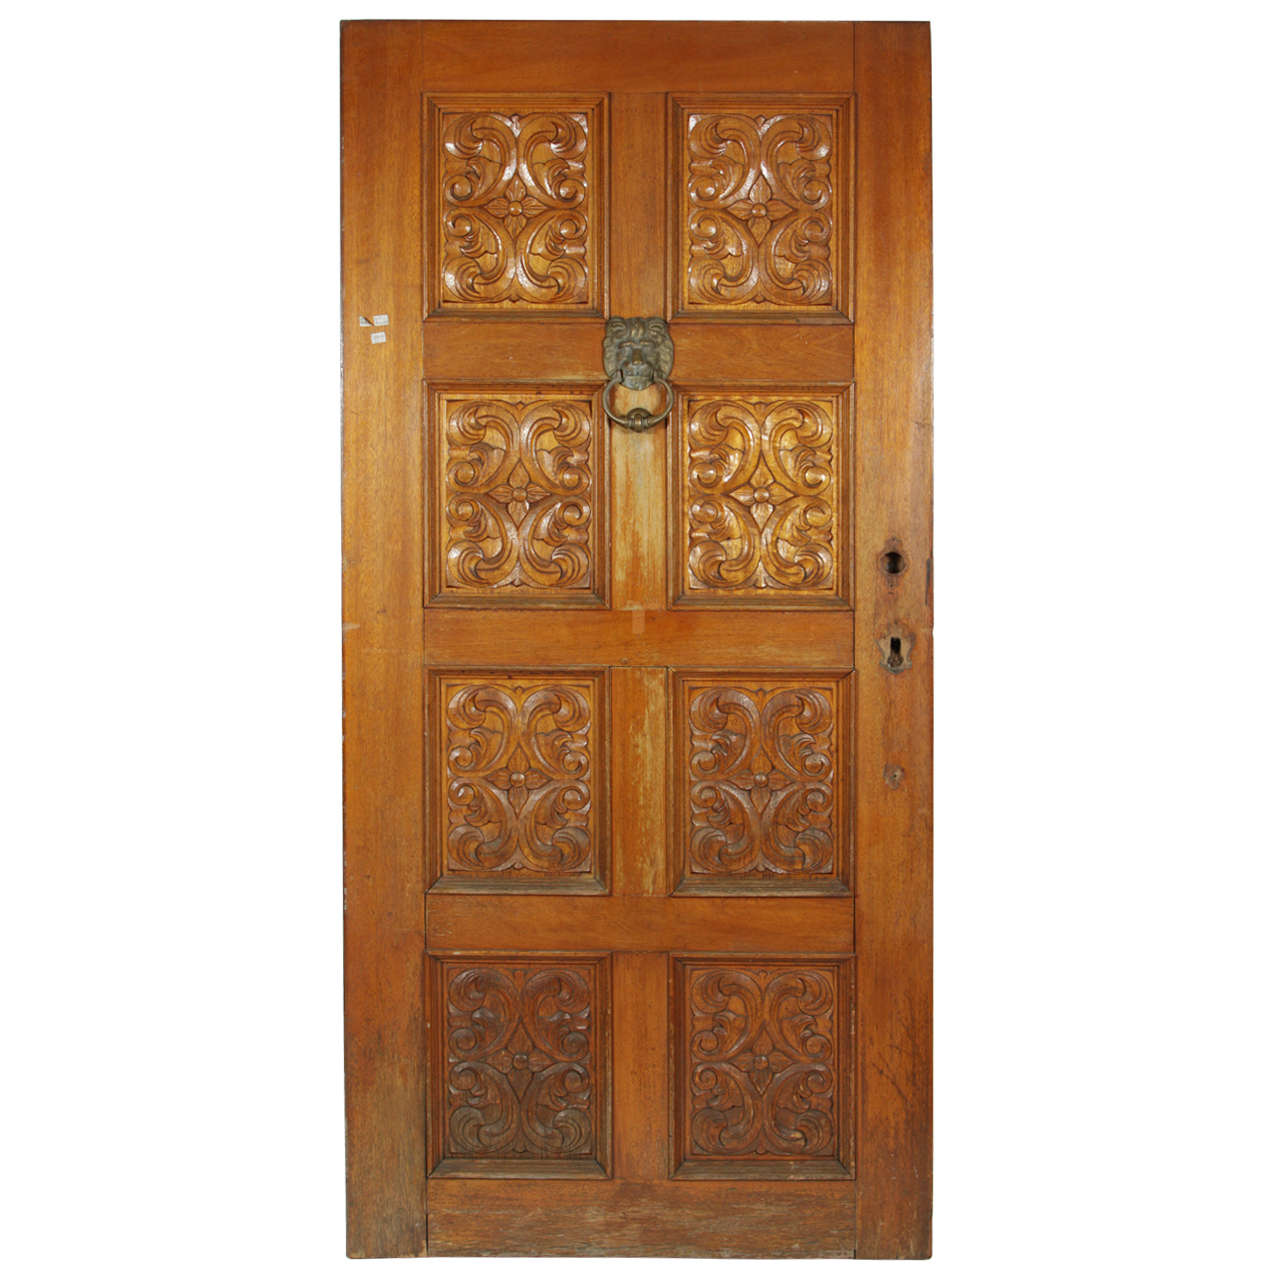 Superieur Carved Wooden Spanish Style Entry Door With Bronze Doorknocker For Sale